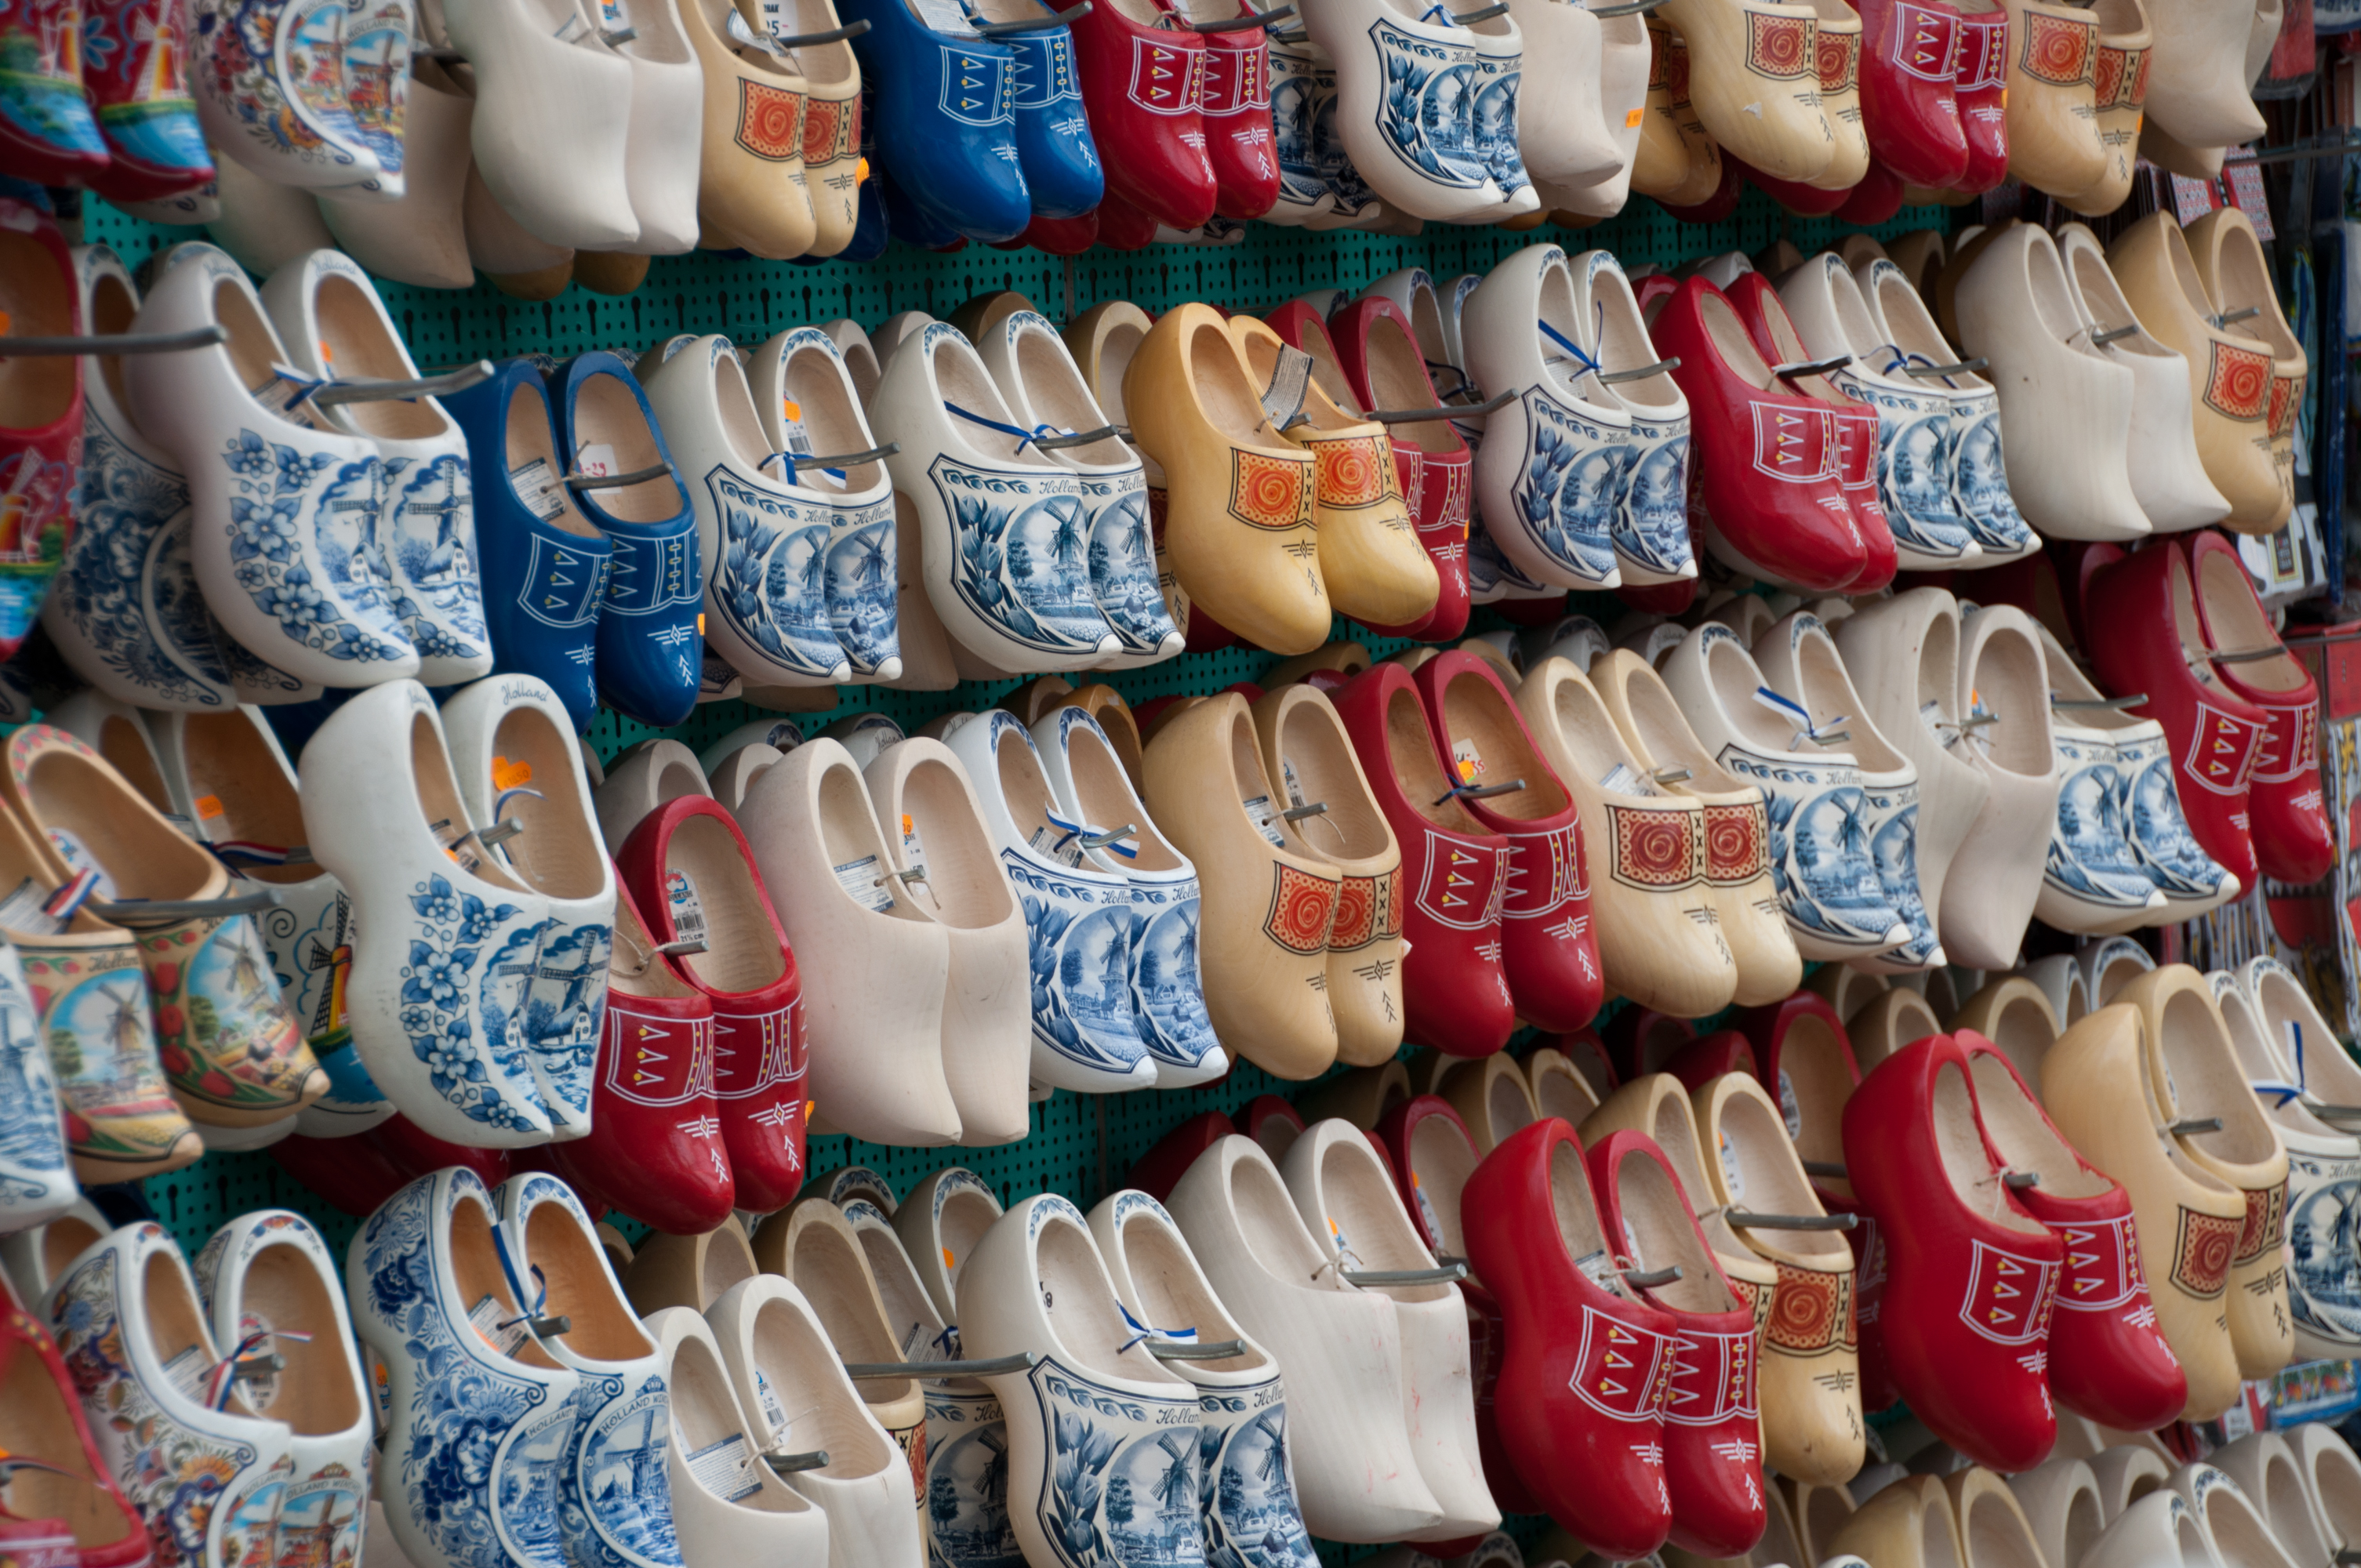 Clogs in Amsterdam, Netherlands